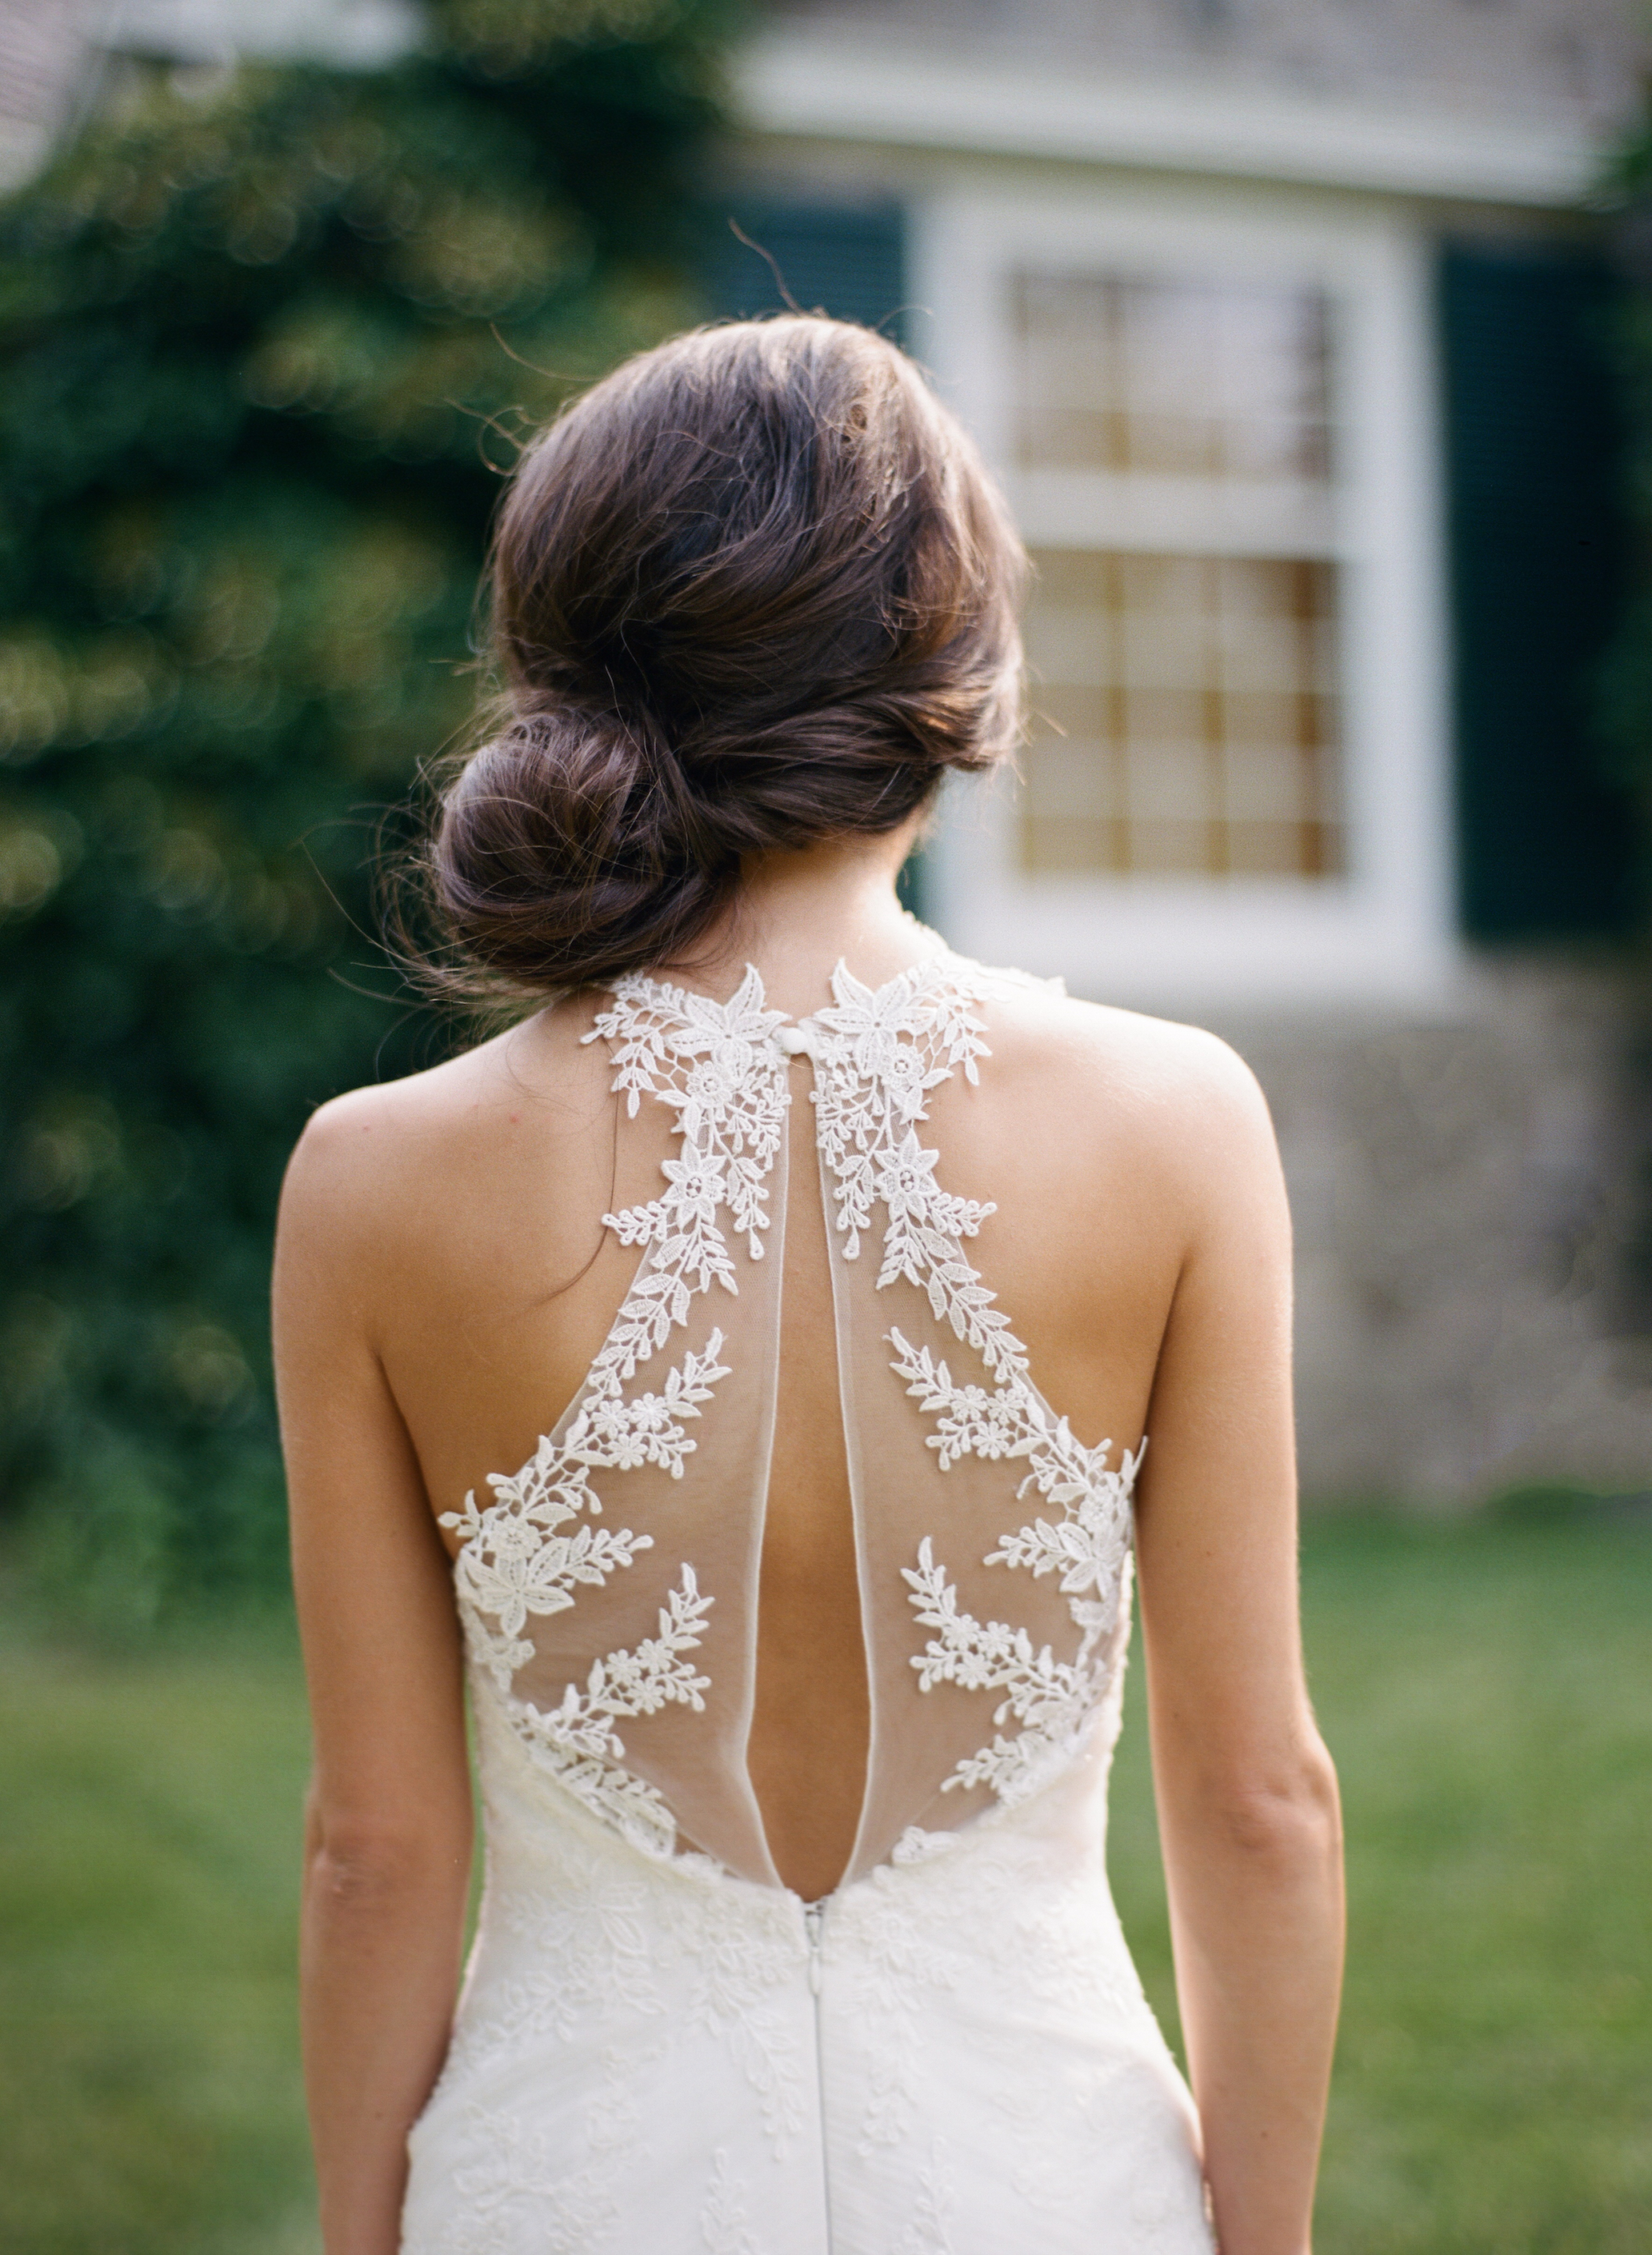 A Bride in a Wedding Dress with Back Details